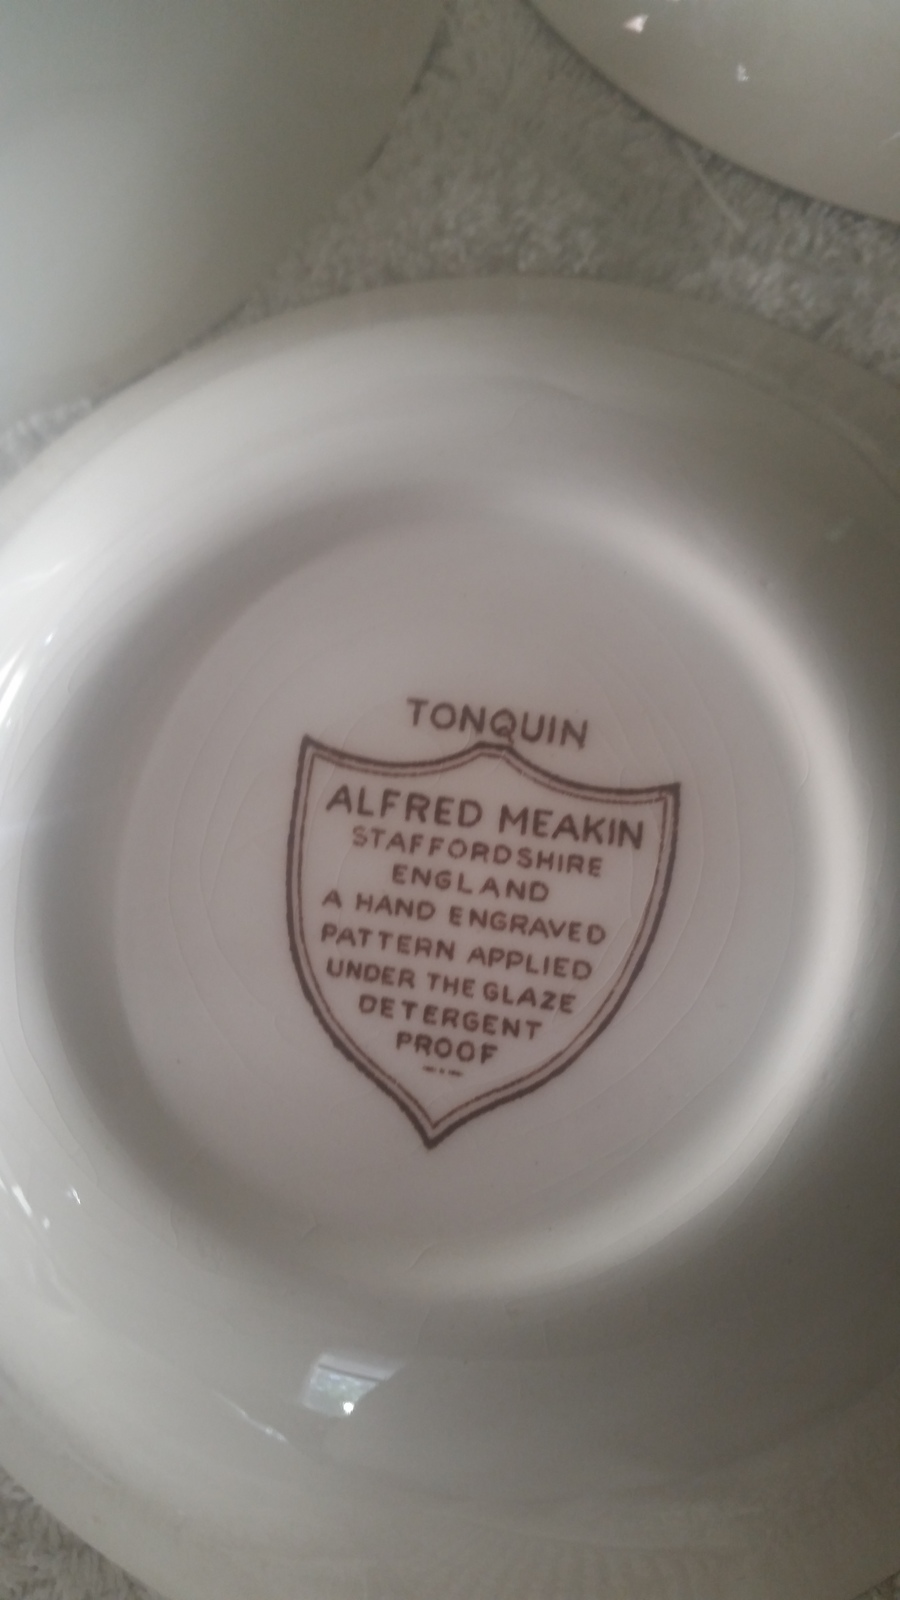 Brown Tonquin Alfred Meakin Staffordshire England Dinnerware Collection Meghan 2 years ago : meakin dinnerware - Pezcame.Com